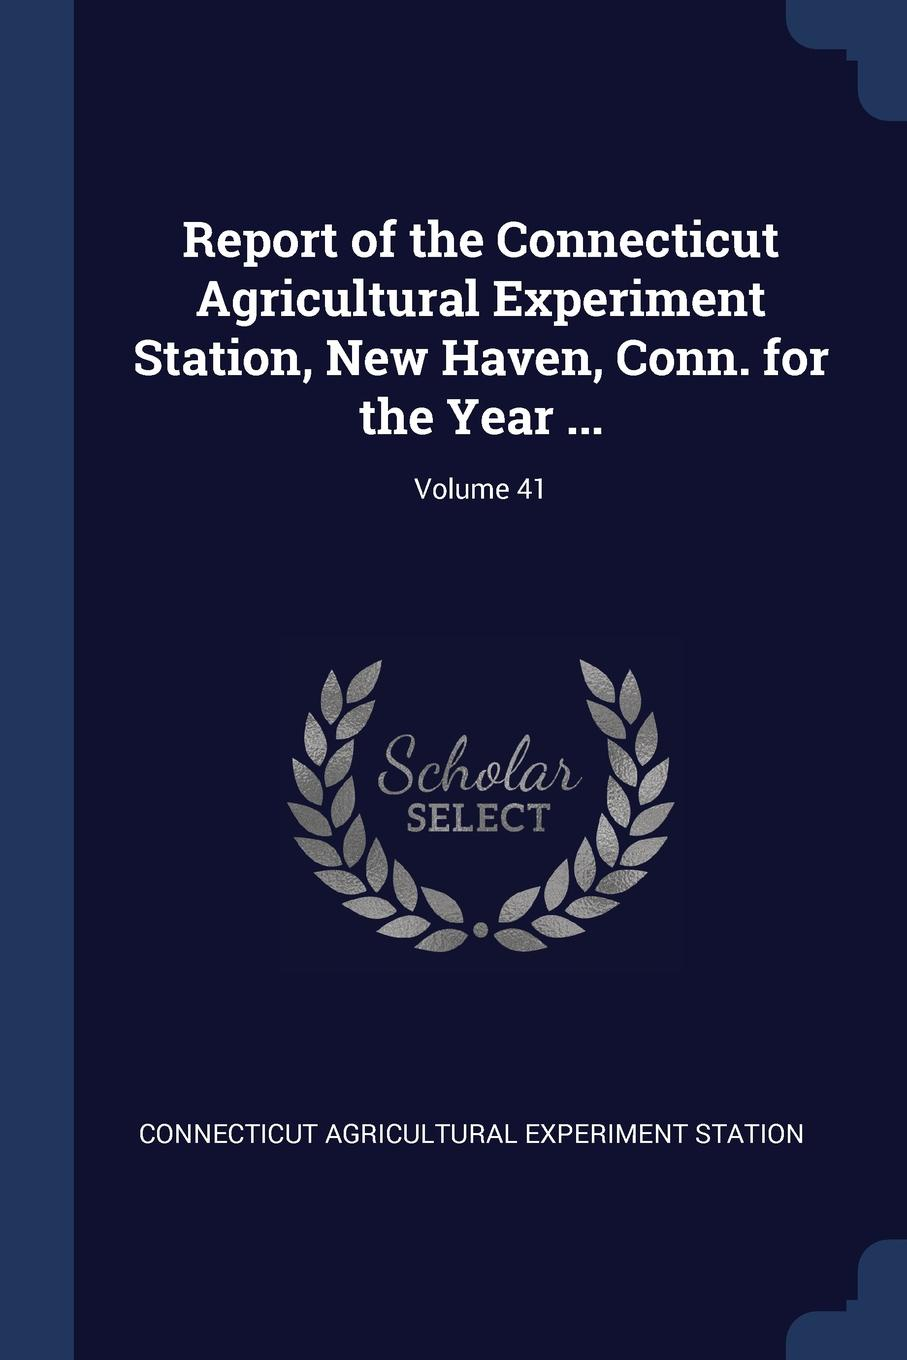 Connecticut Agricultural Experi Station Report of the Experiment Station, New Haven, Conn. for Year ...; Volume 41